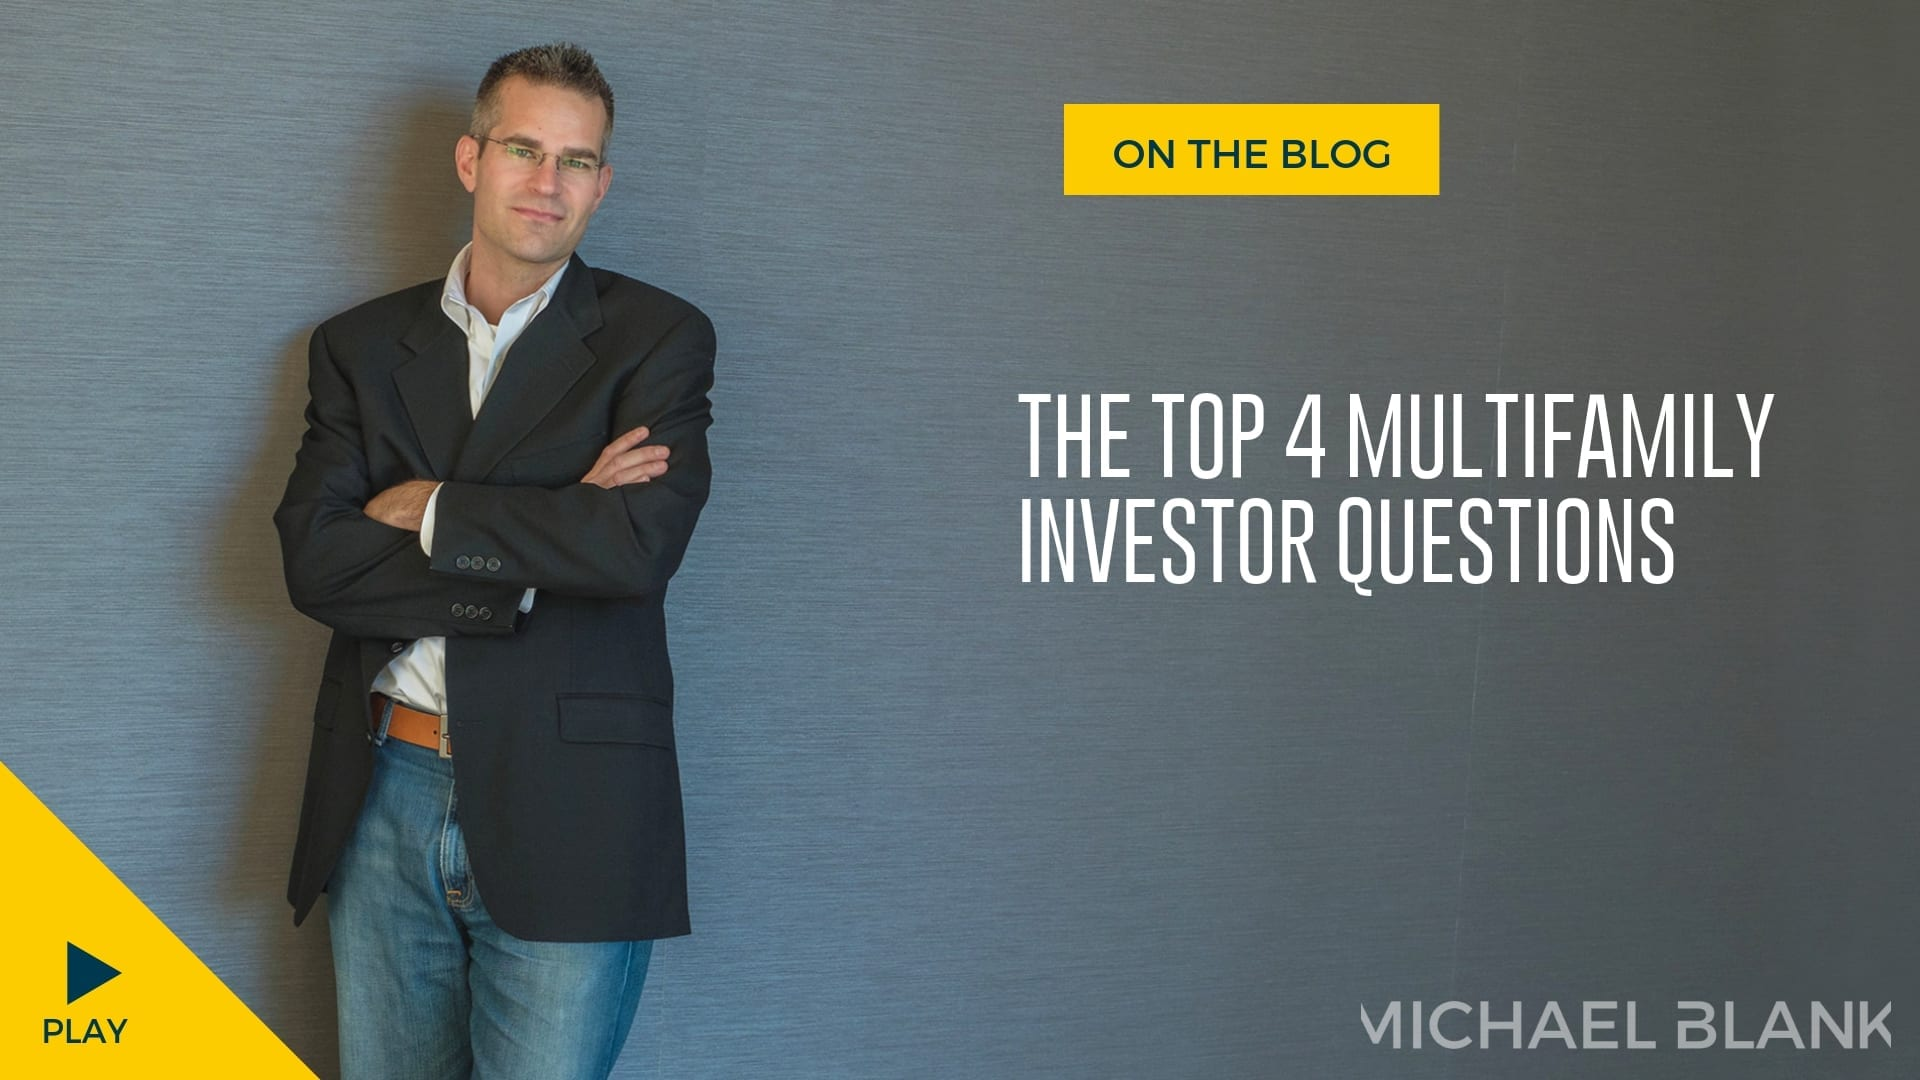 The Top 4 Multifamily Investor Questions